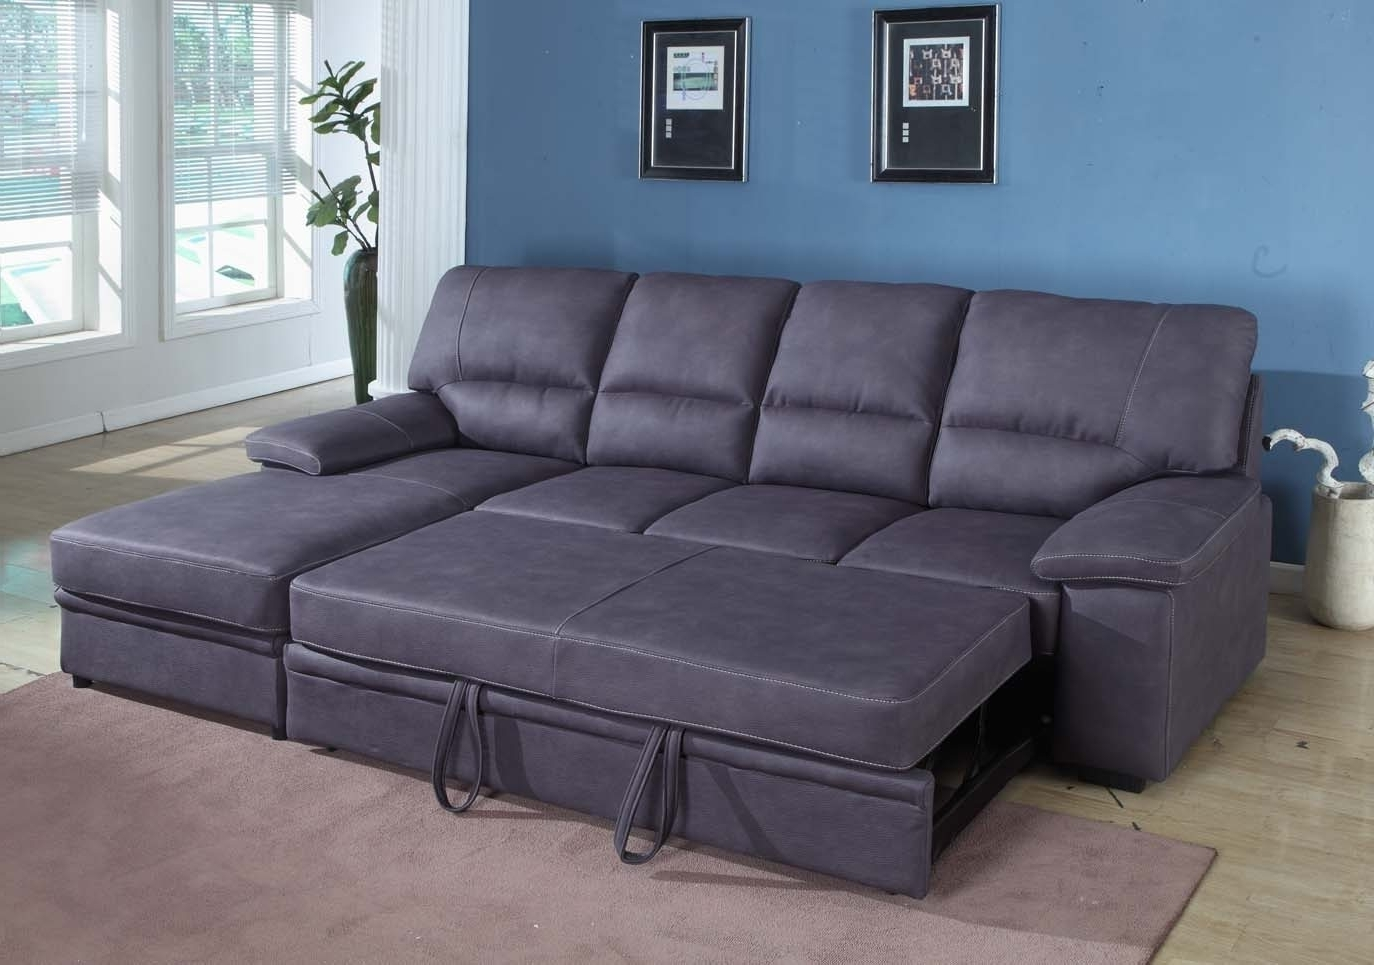 Most Popular Sectional Sofas That Turn Into Beds Intended For Sofa : Double Size Sleeper Sofa Cheap Pull Out Couch Bed Pull Out (View 6 of 15)